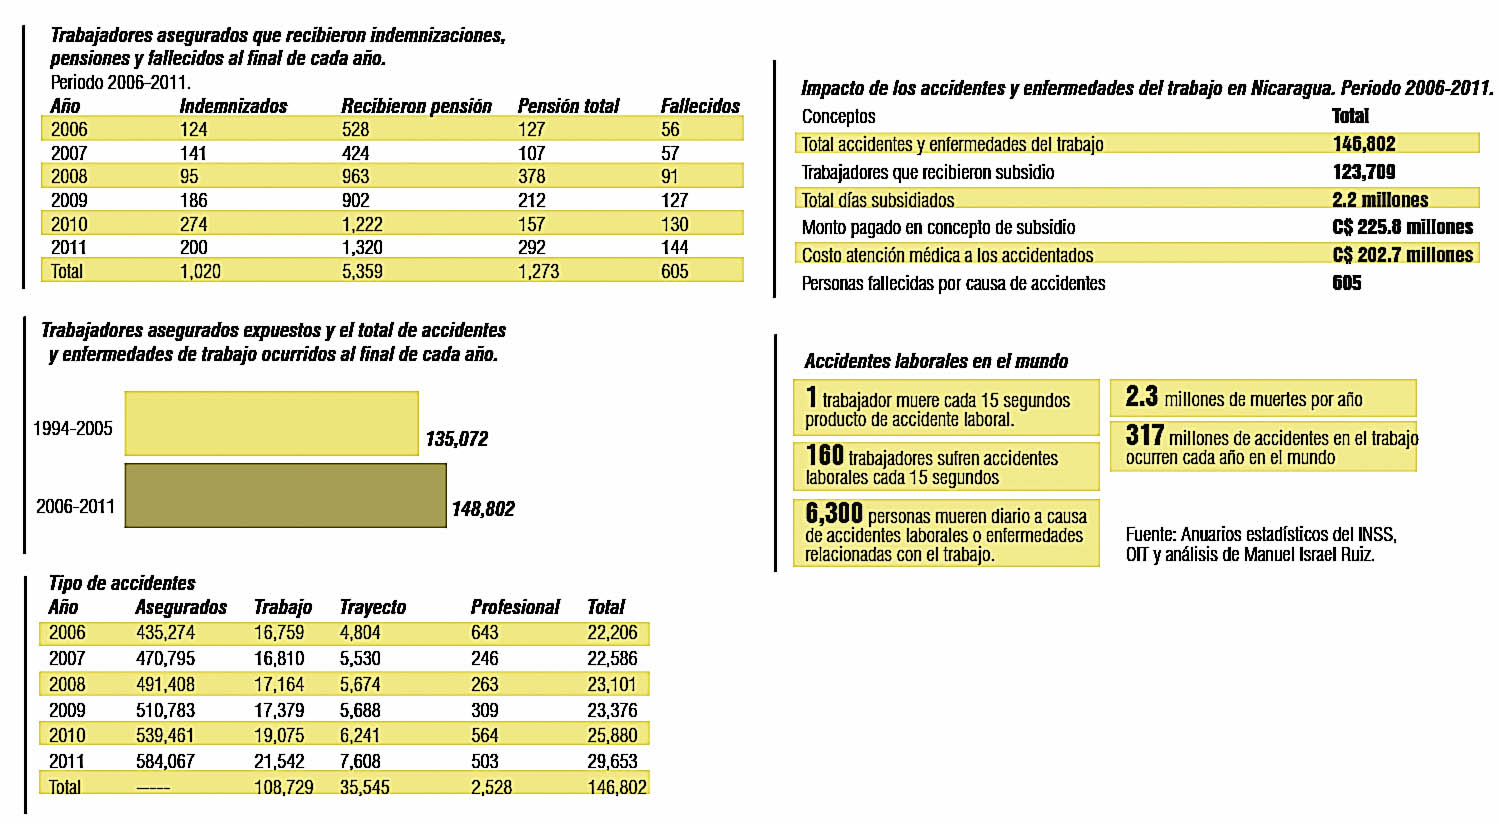 30,000 accidentes laborales